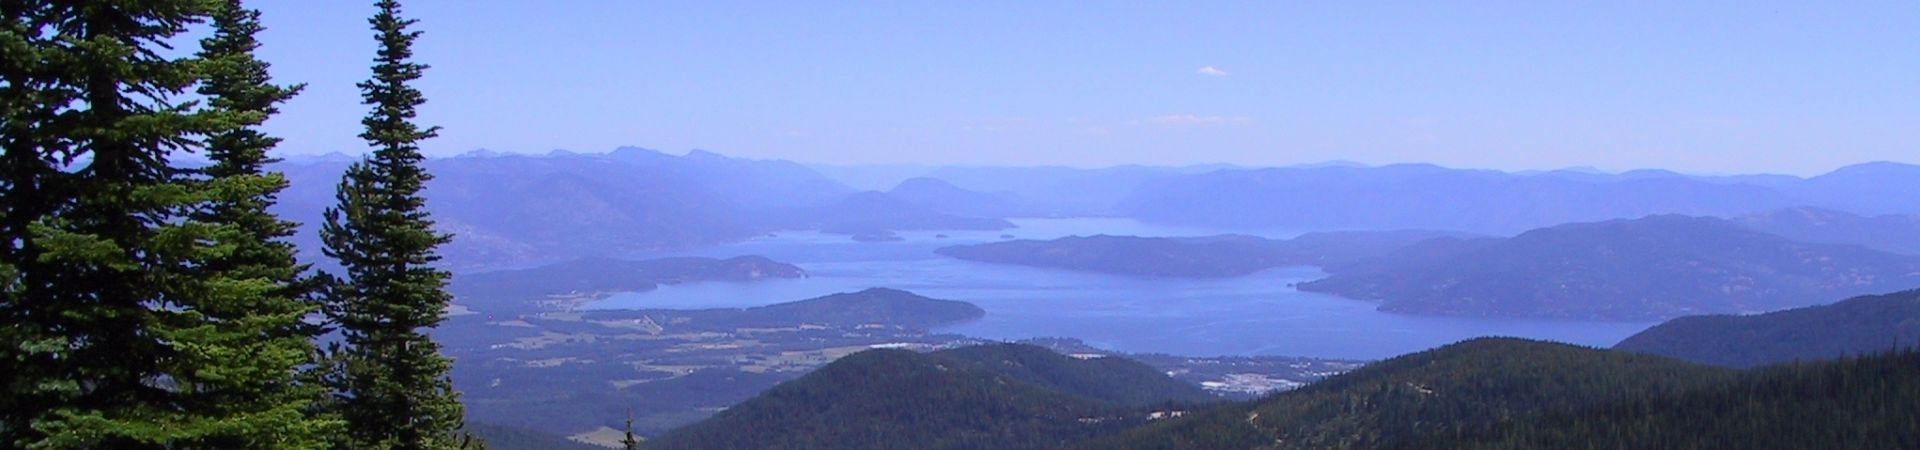 Sandpoint idaho from schweitzer